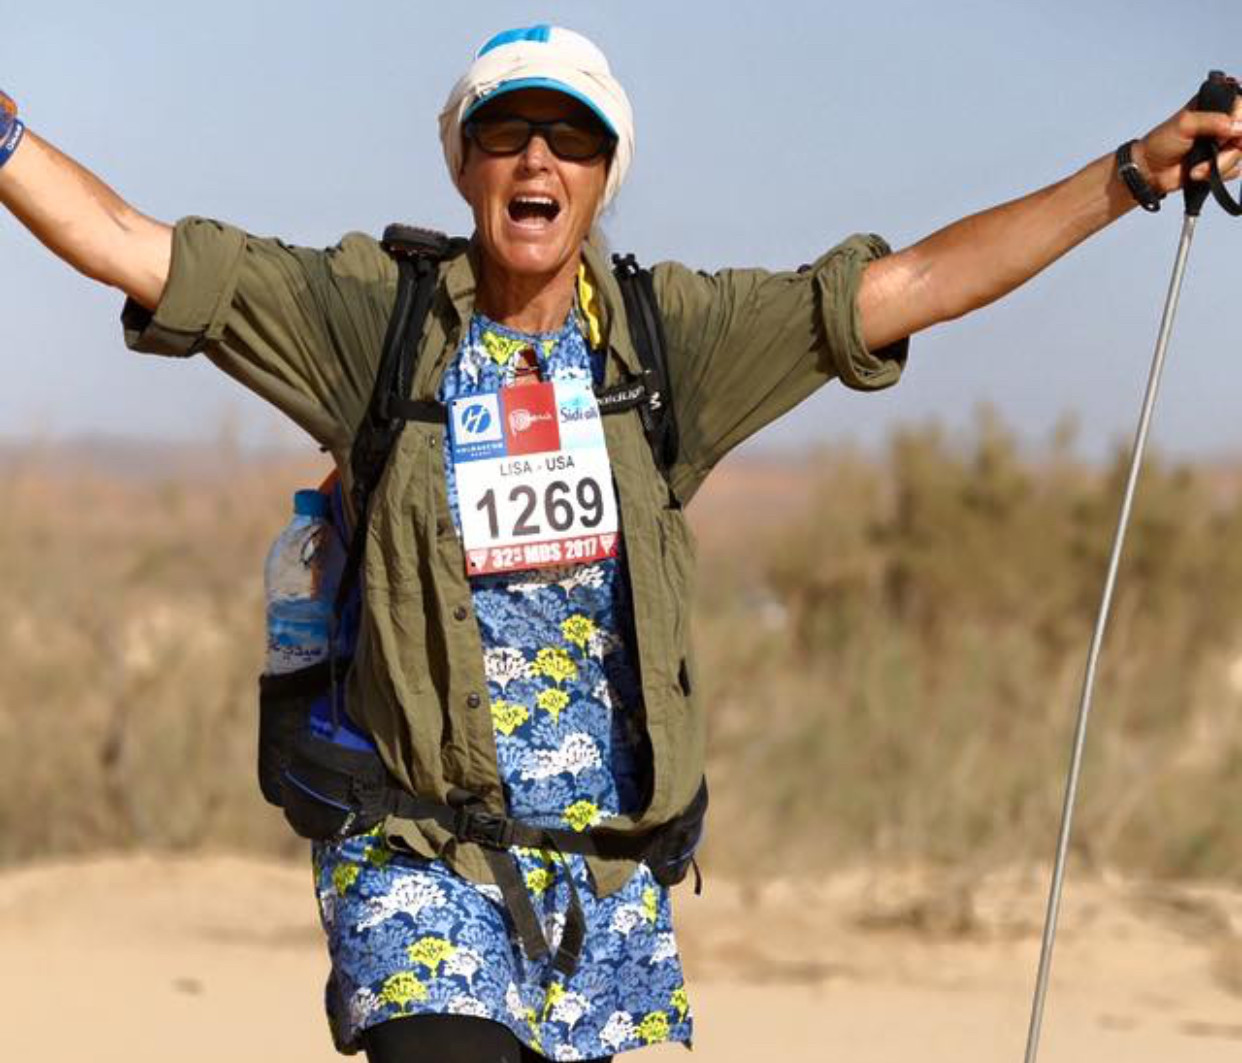 I walked with the camels, sat on top of sand dunes, sang songs, mediated and helped Runners through some tough moments at MDS